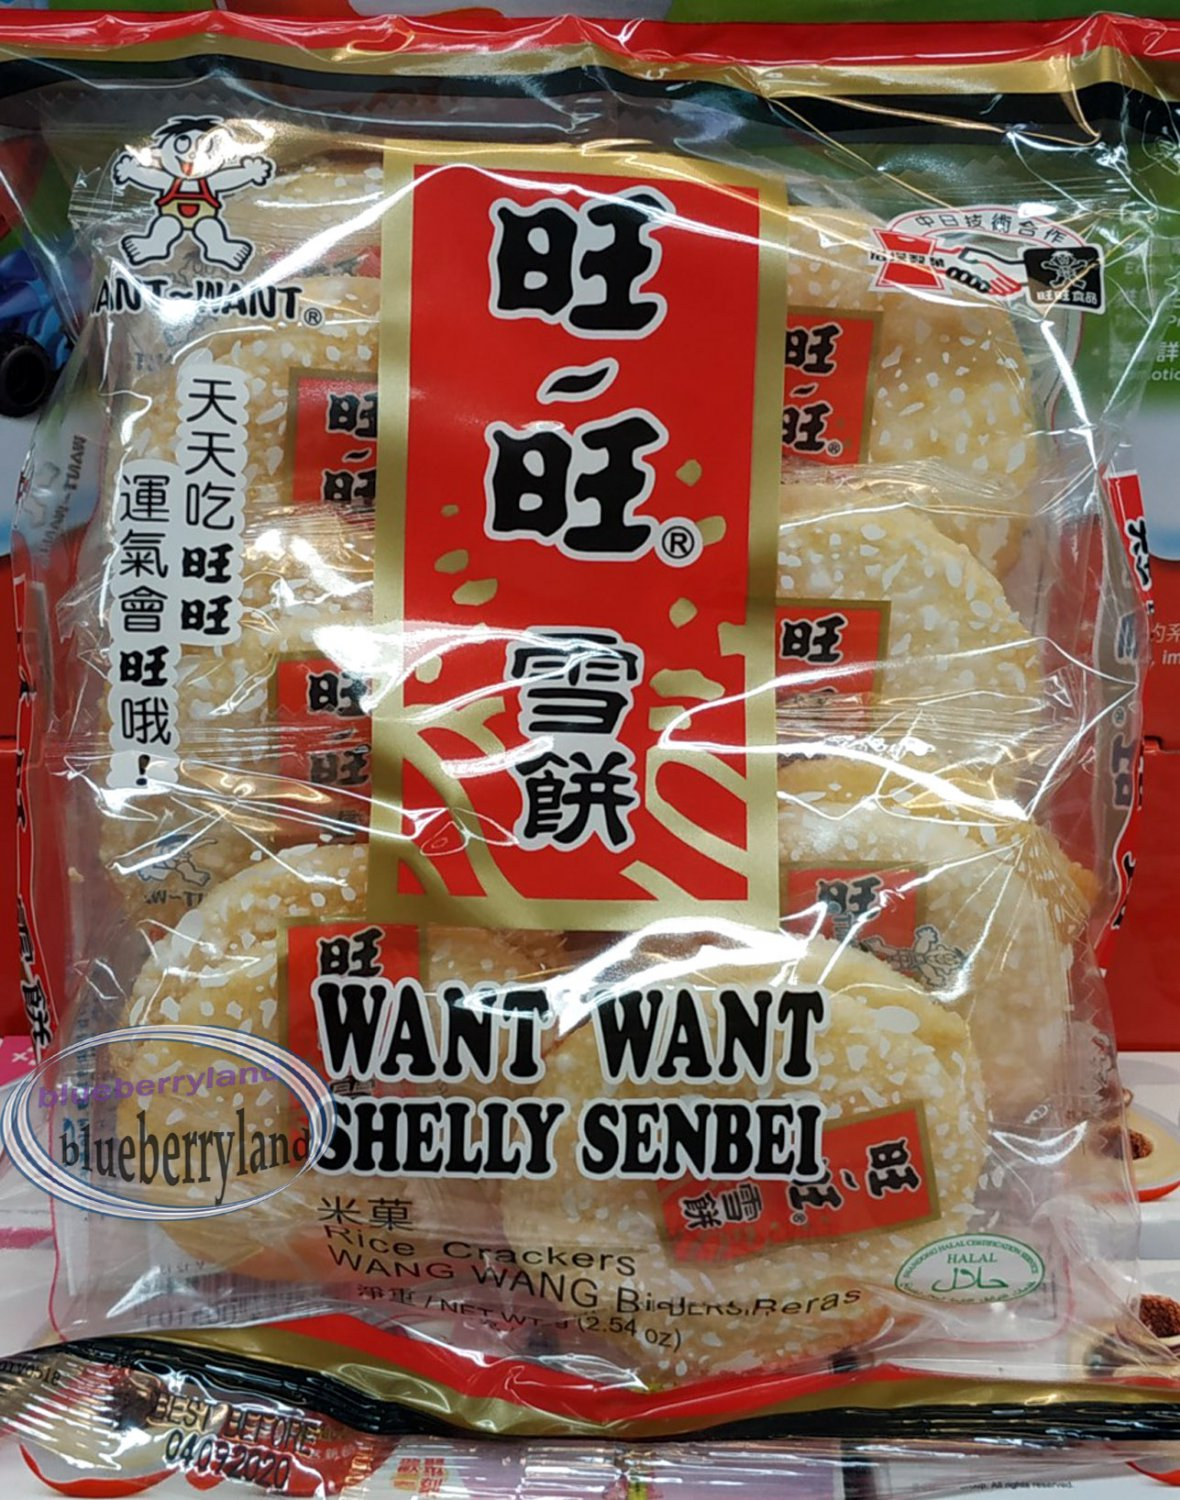 Want Want Rice Crackers 72g ���� party snacks TV ball games snack